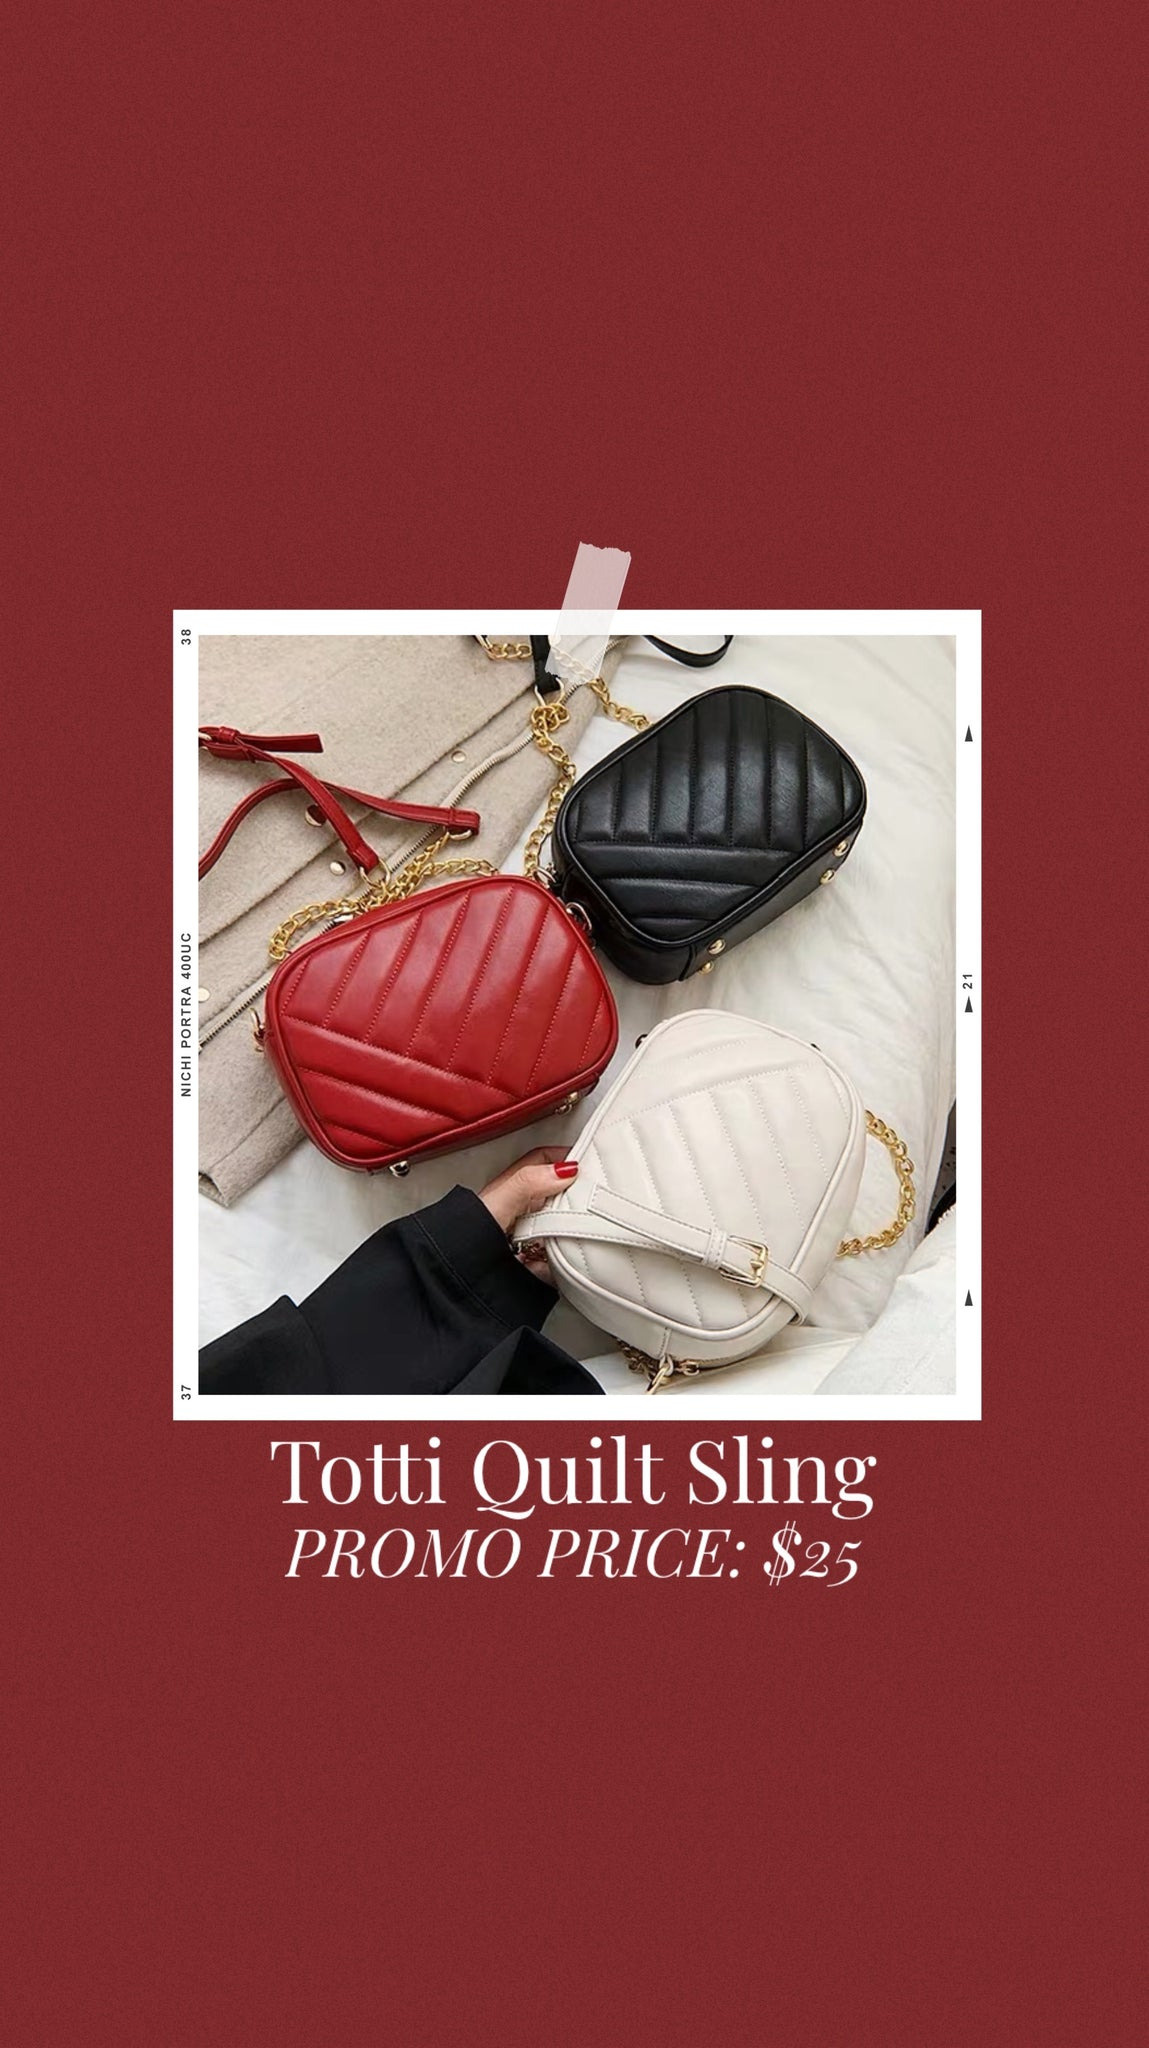 Totti Quilt Sling